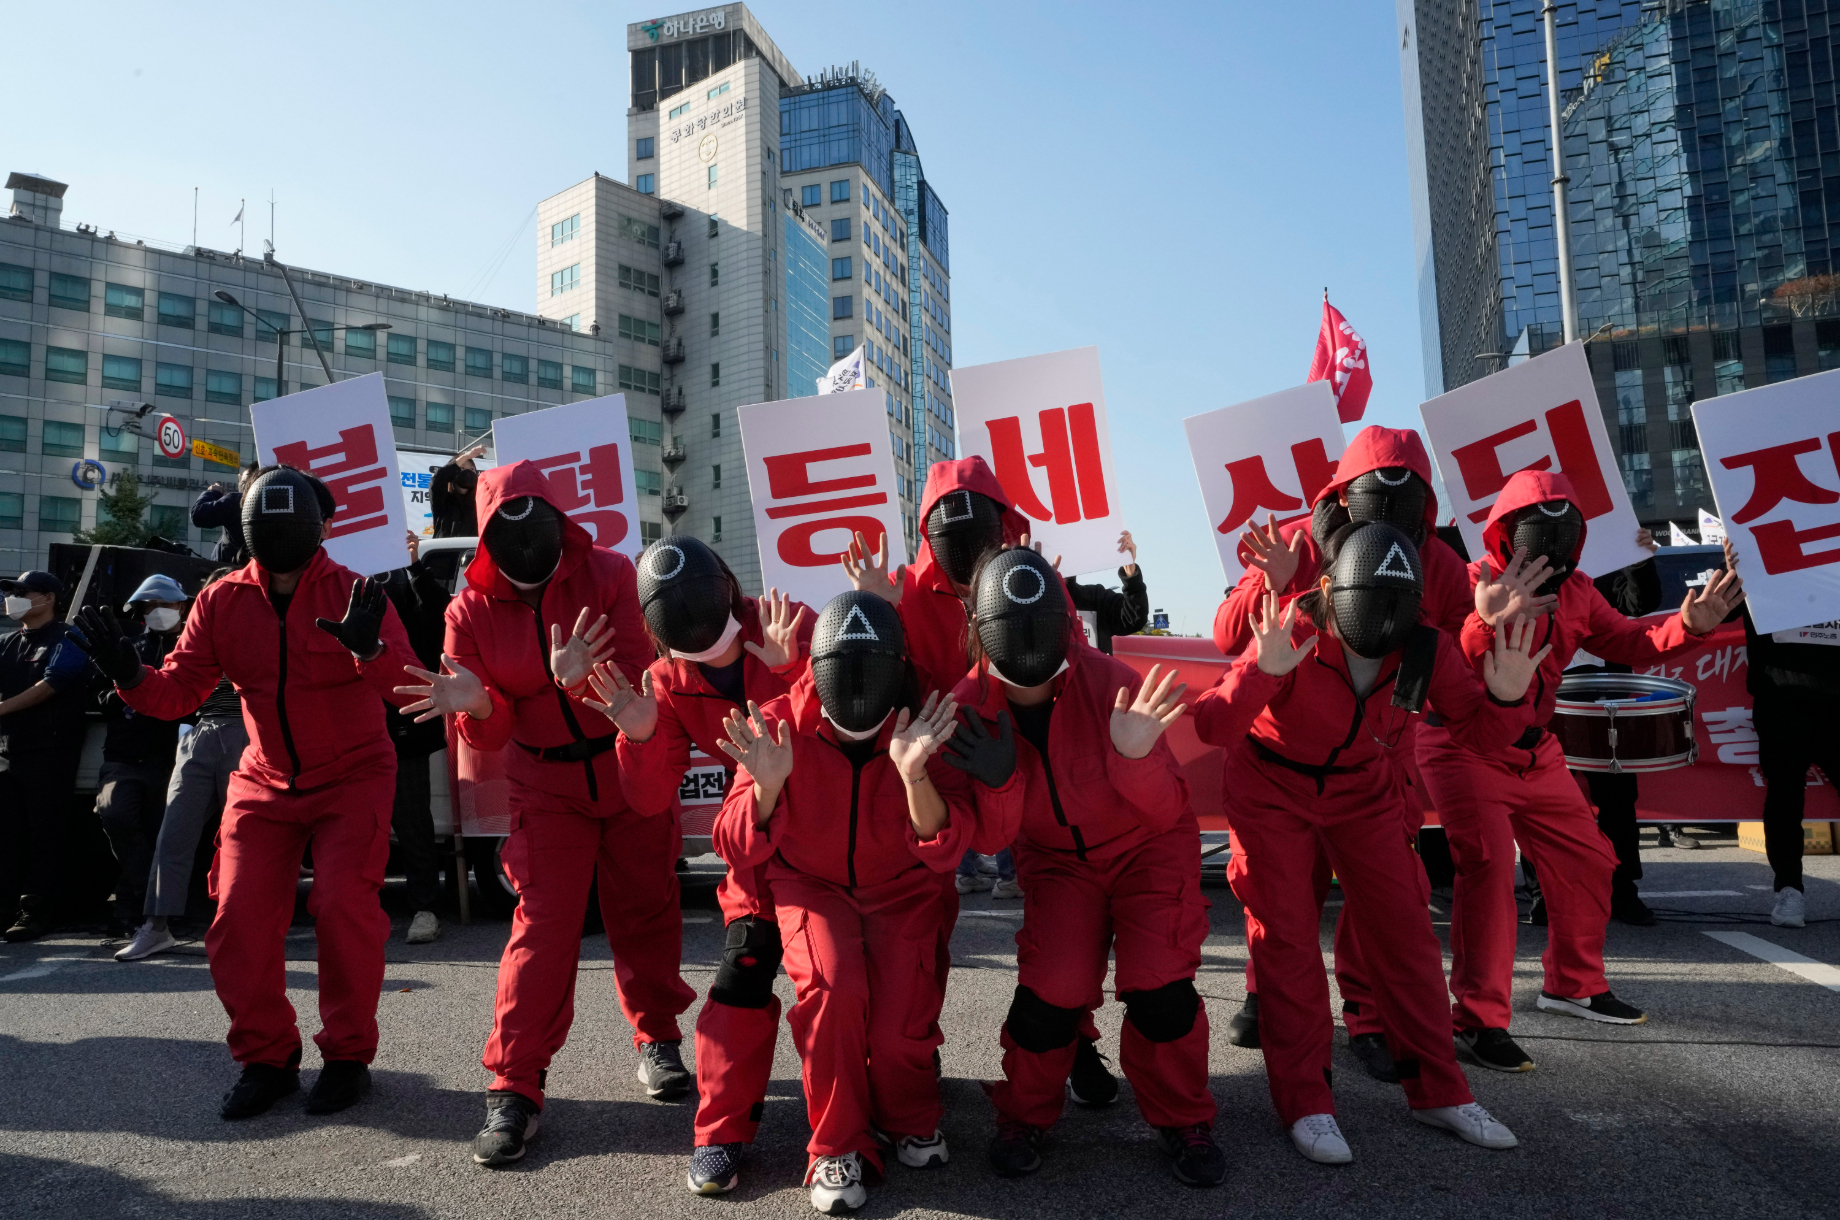 Protestors in South Korea dress as the guards from Squid Game